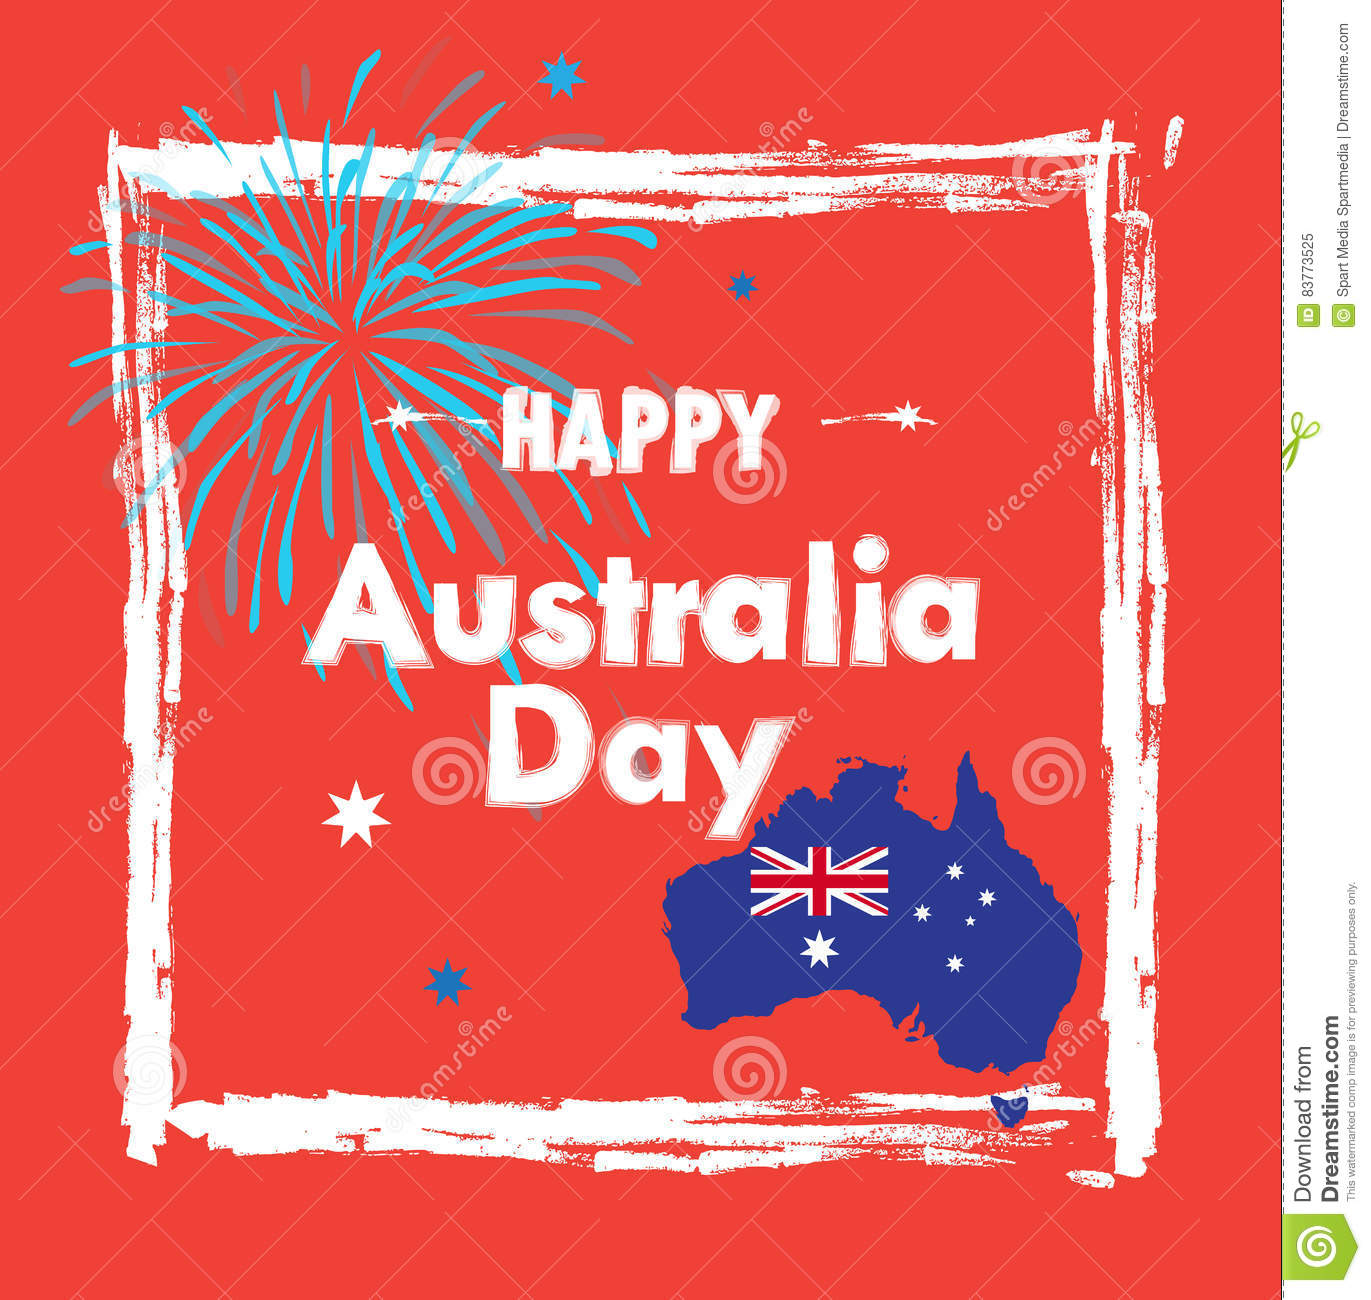 Map Of Australia 26th Parallel.Happy Australia Day Stock Vector Illustration Of Christmas 83773525